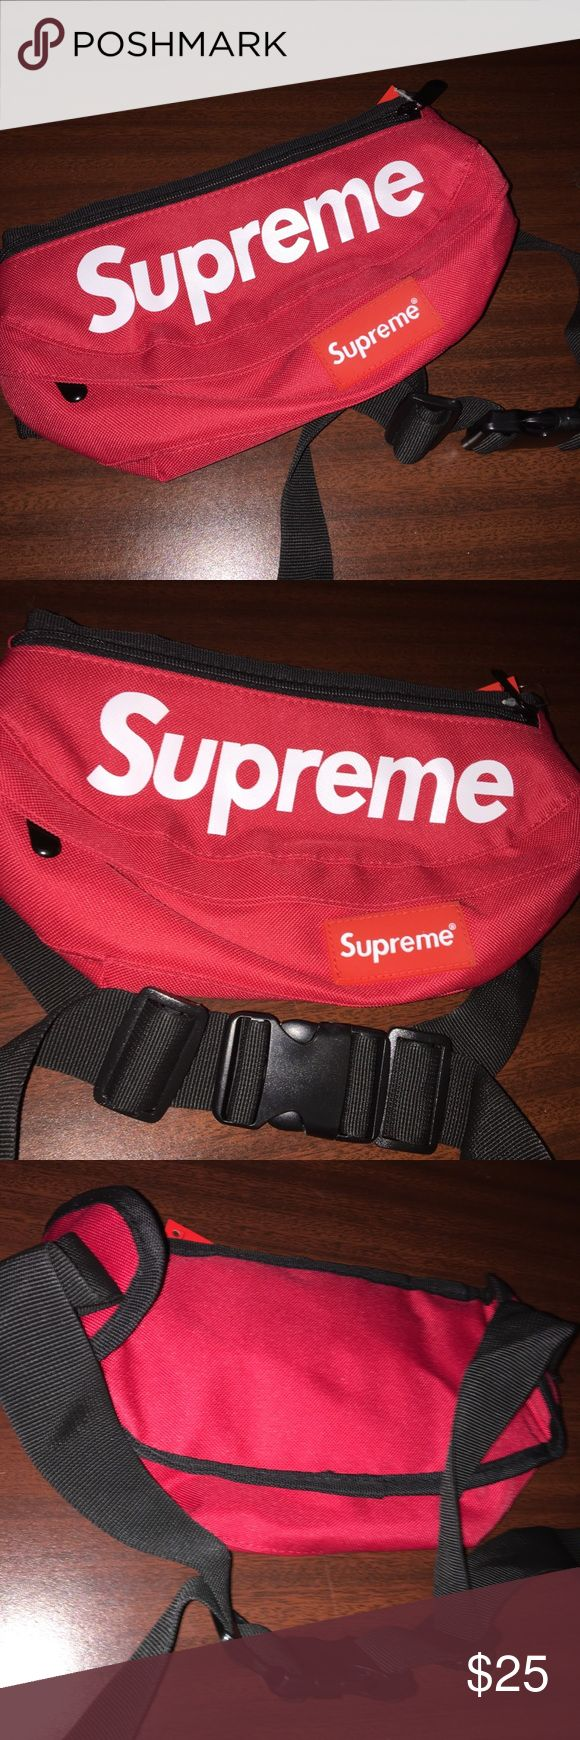 Supreme Red Fanny Pack You will be sent a Supreme Red Fanny Pack! Check my love notes for happy customers :) Nice size & good quality. Price is firm and fast shipper! Feel free to ask questions in the comments! Tags: Nike, Bape, Adidas, Yeezy, Gucci, Louis Vuitton Supreme Bags